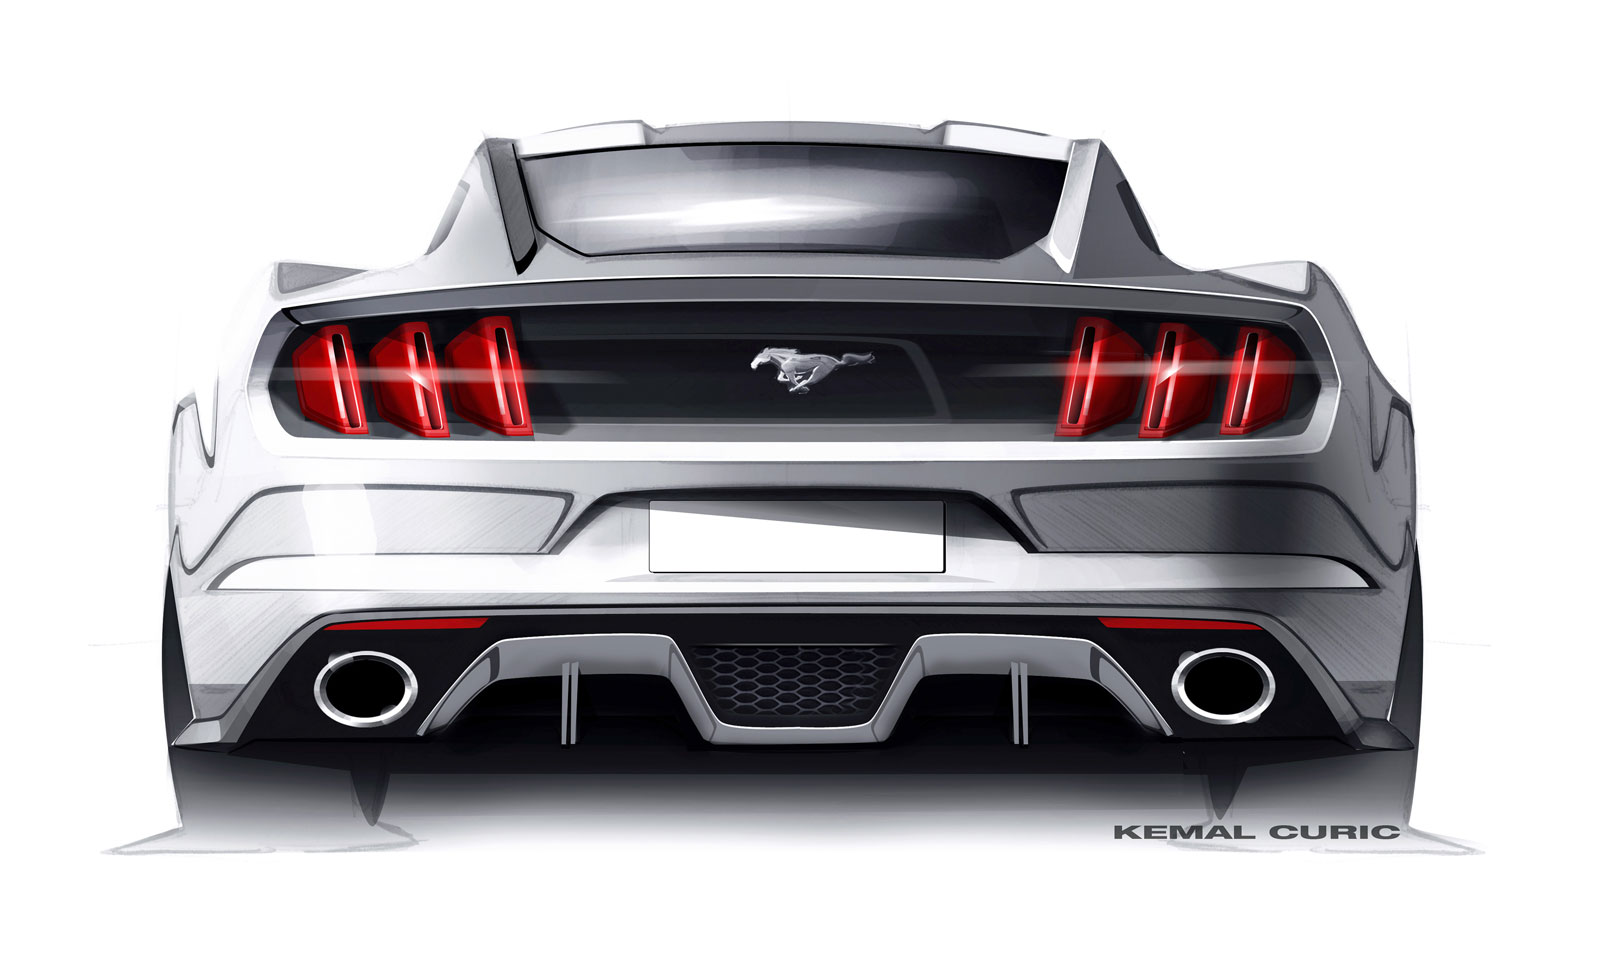 Ford Mustang Design Sketch By Kemal Curic Car Body